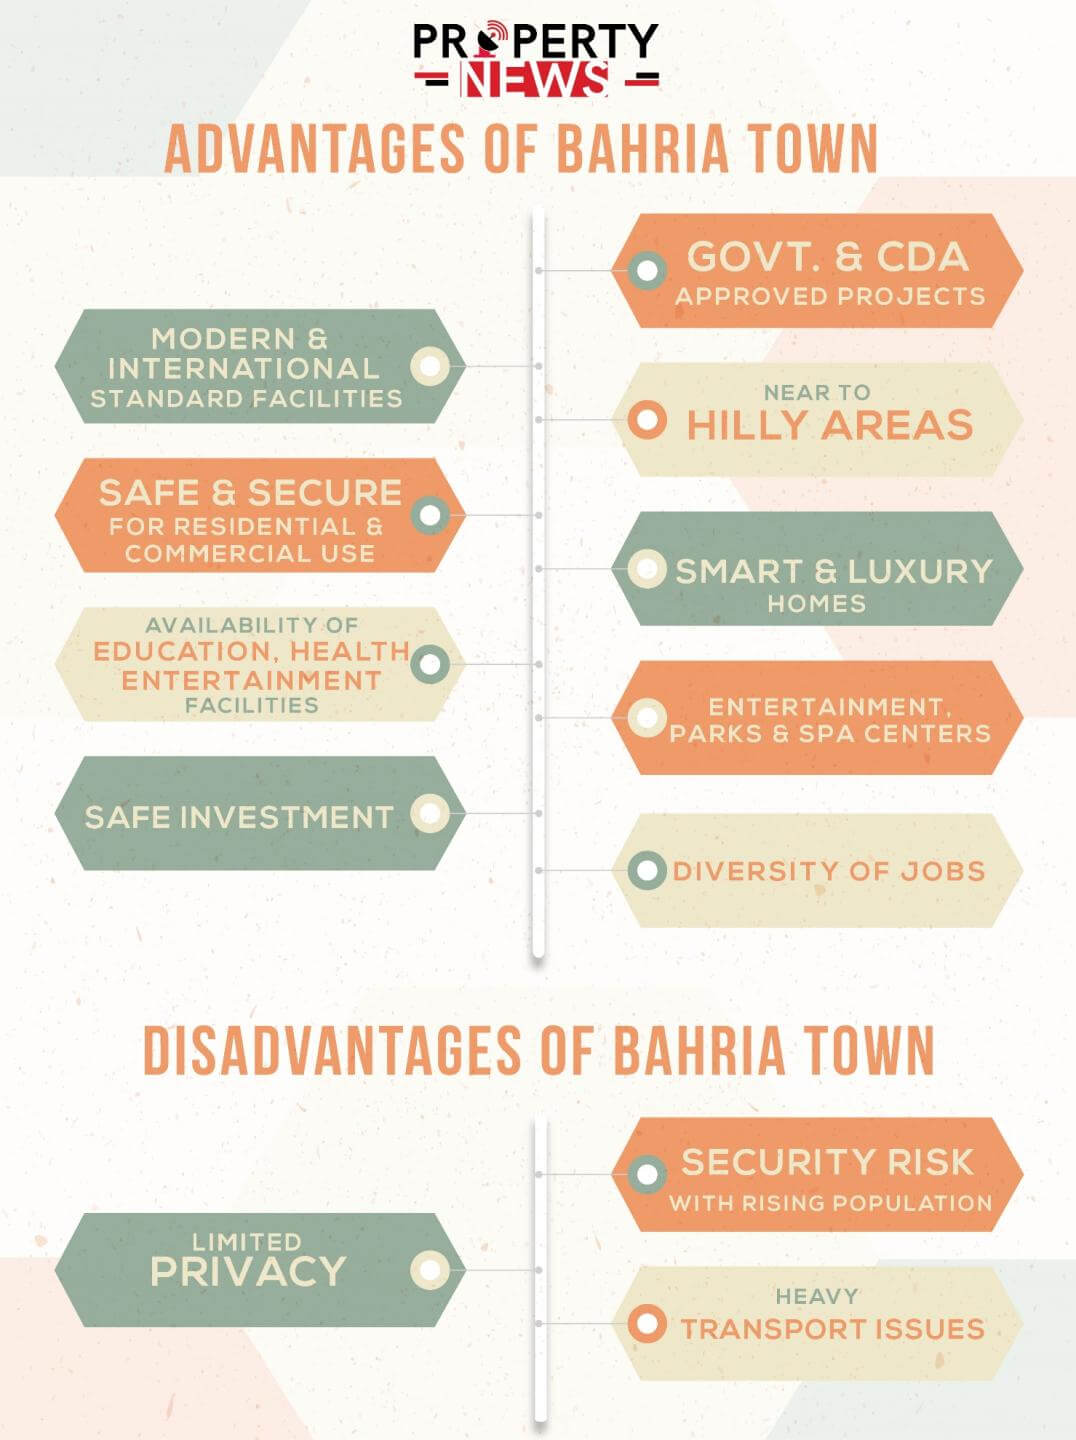 Advantages and Disadvantages of Bahria Town